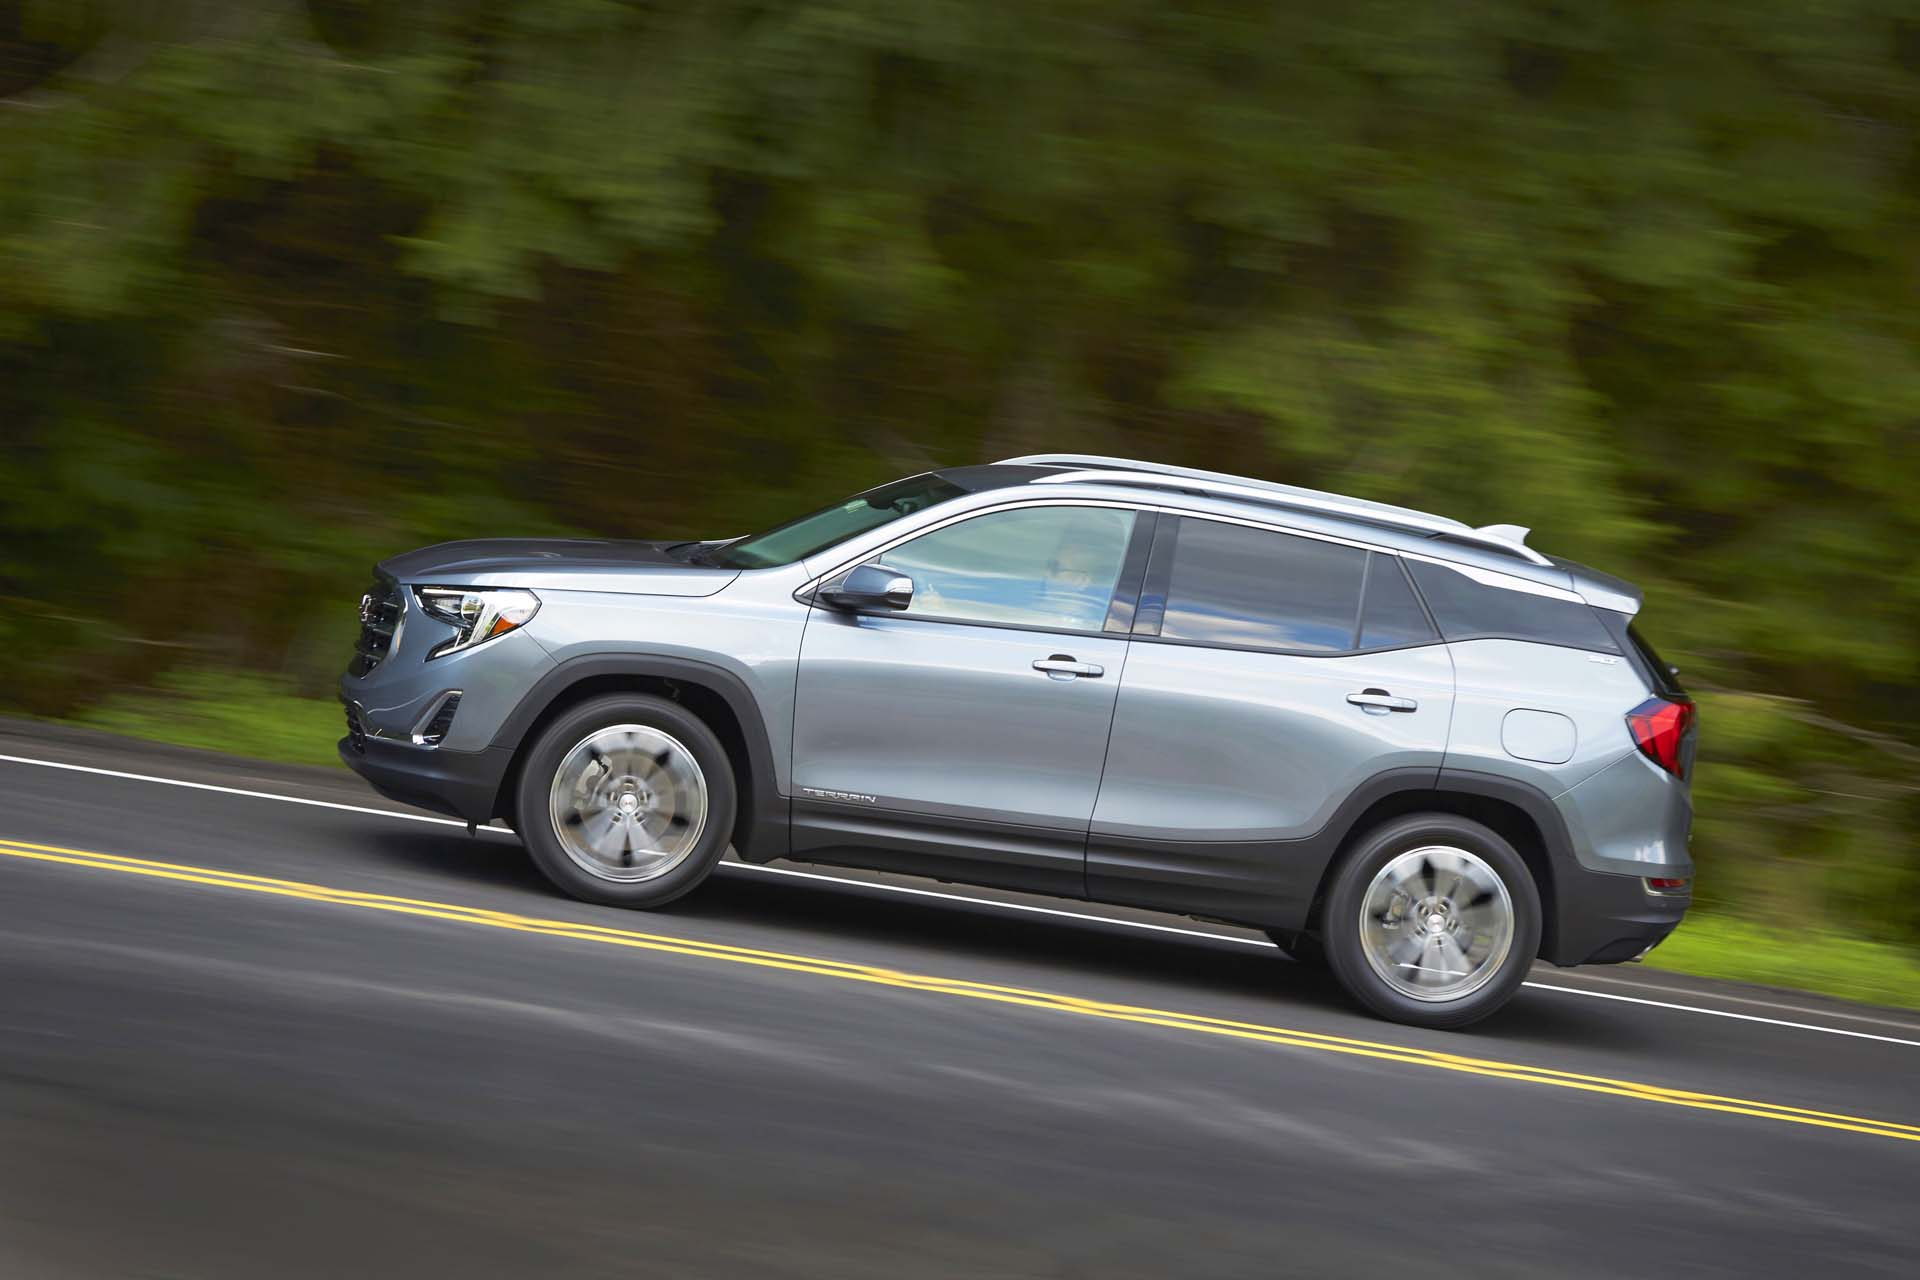 2019 GMC Terrain prices and expert review - The Car Connection